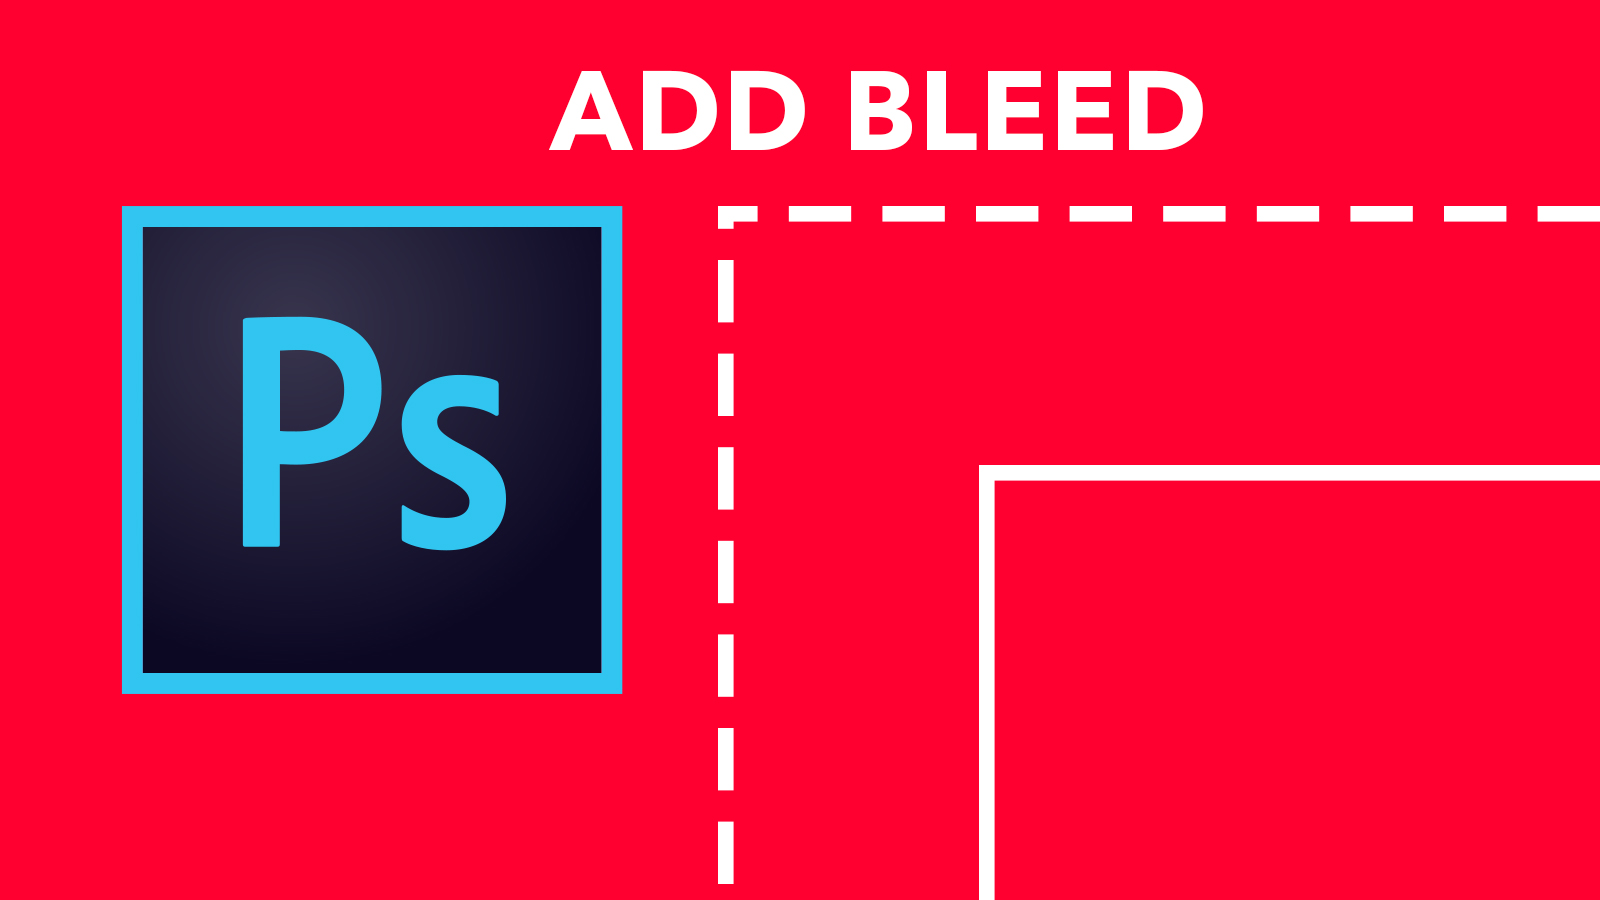 ADD BLEED IN PHOTOSHOP